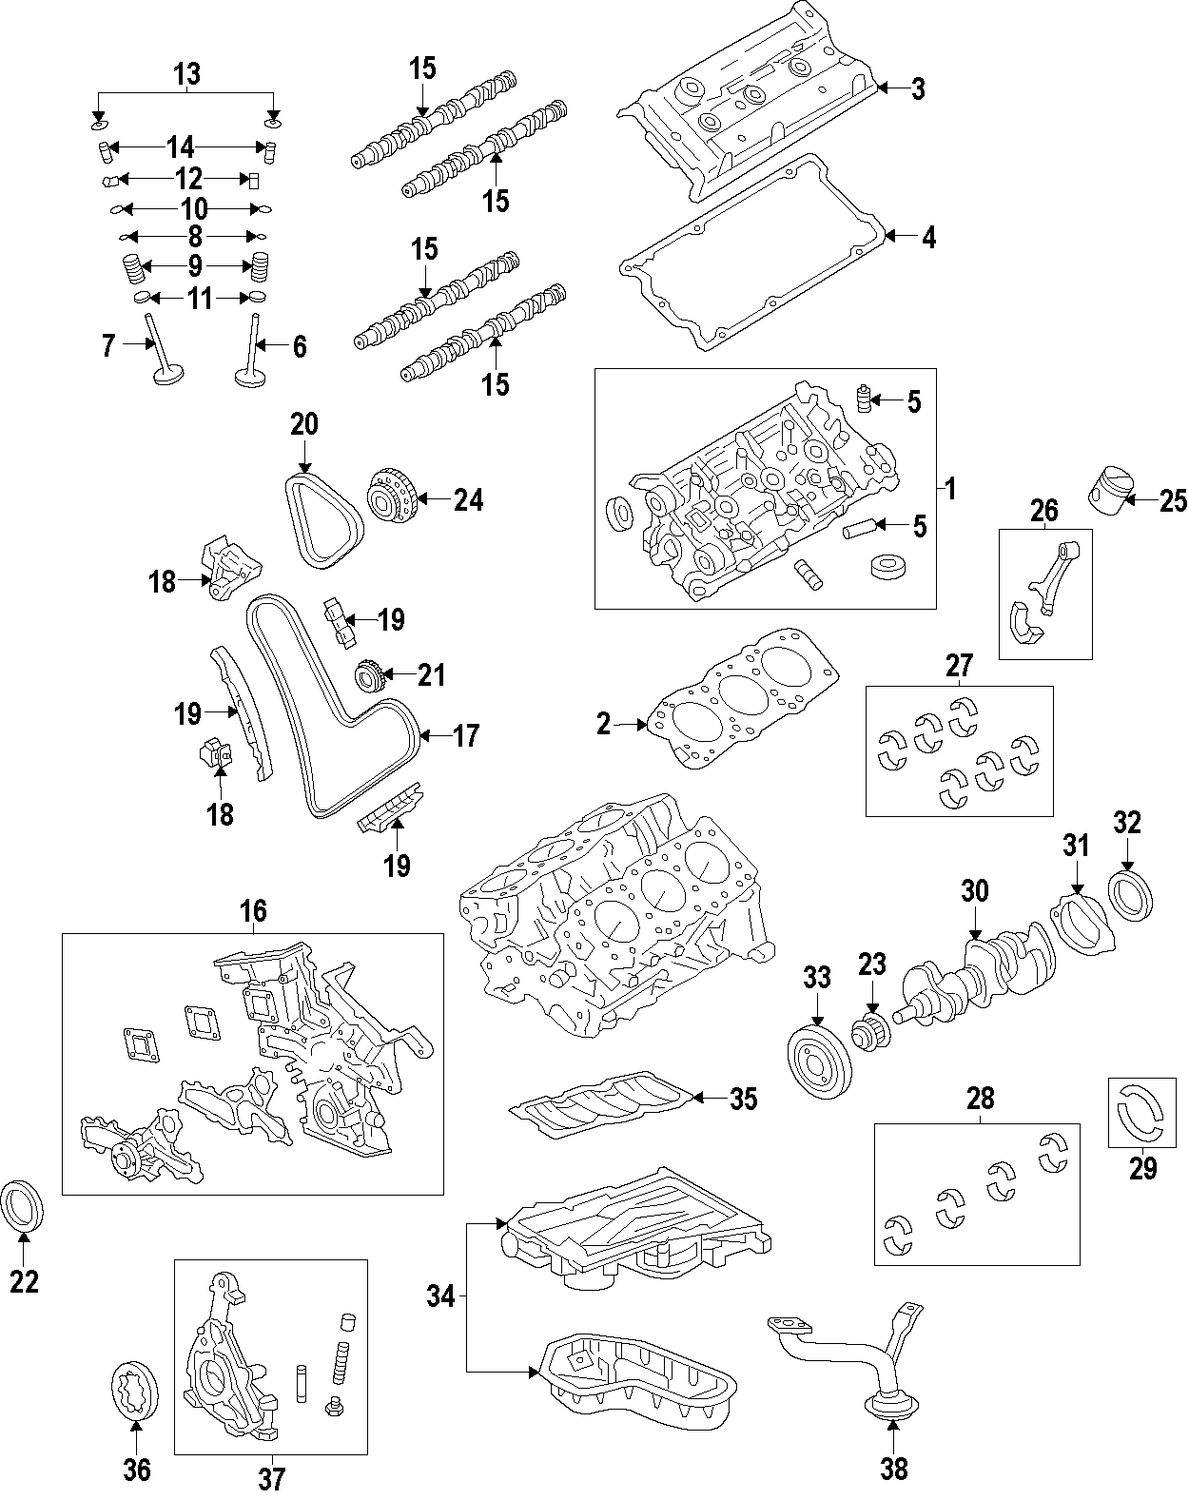 2006 Lexus Gs430 Fuse Box Simple Guide About Wiring Diagram Gs300 Gs350 Engine And